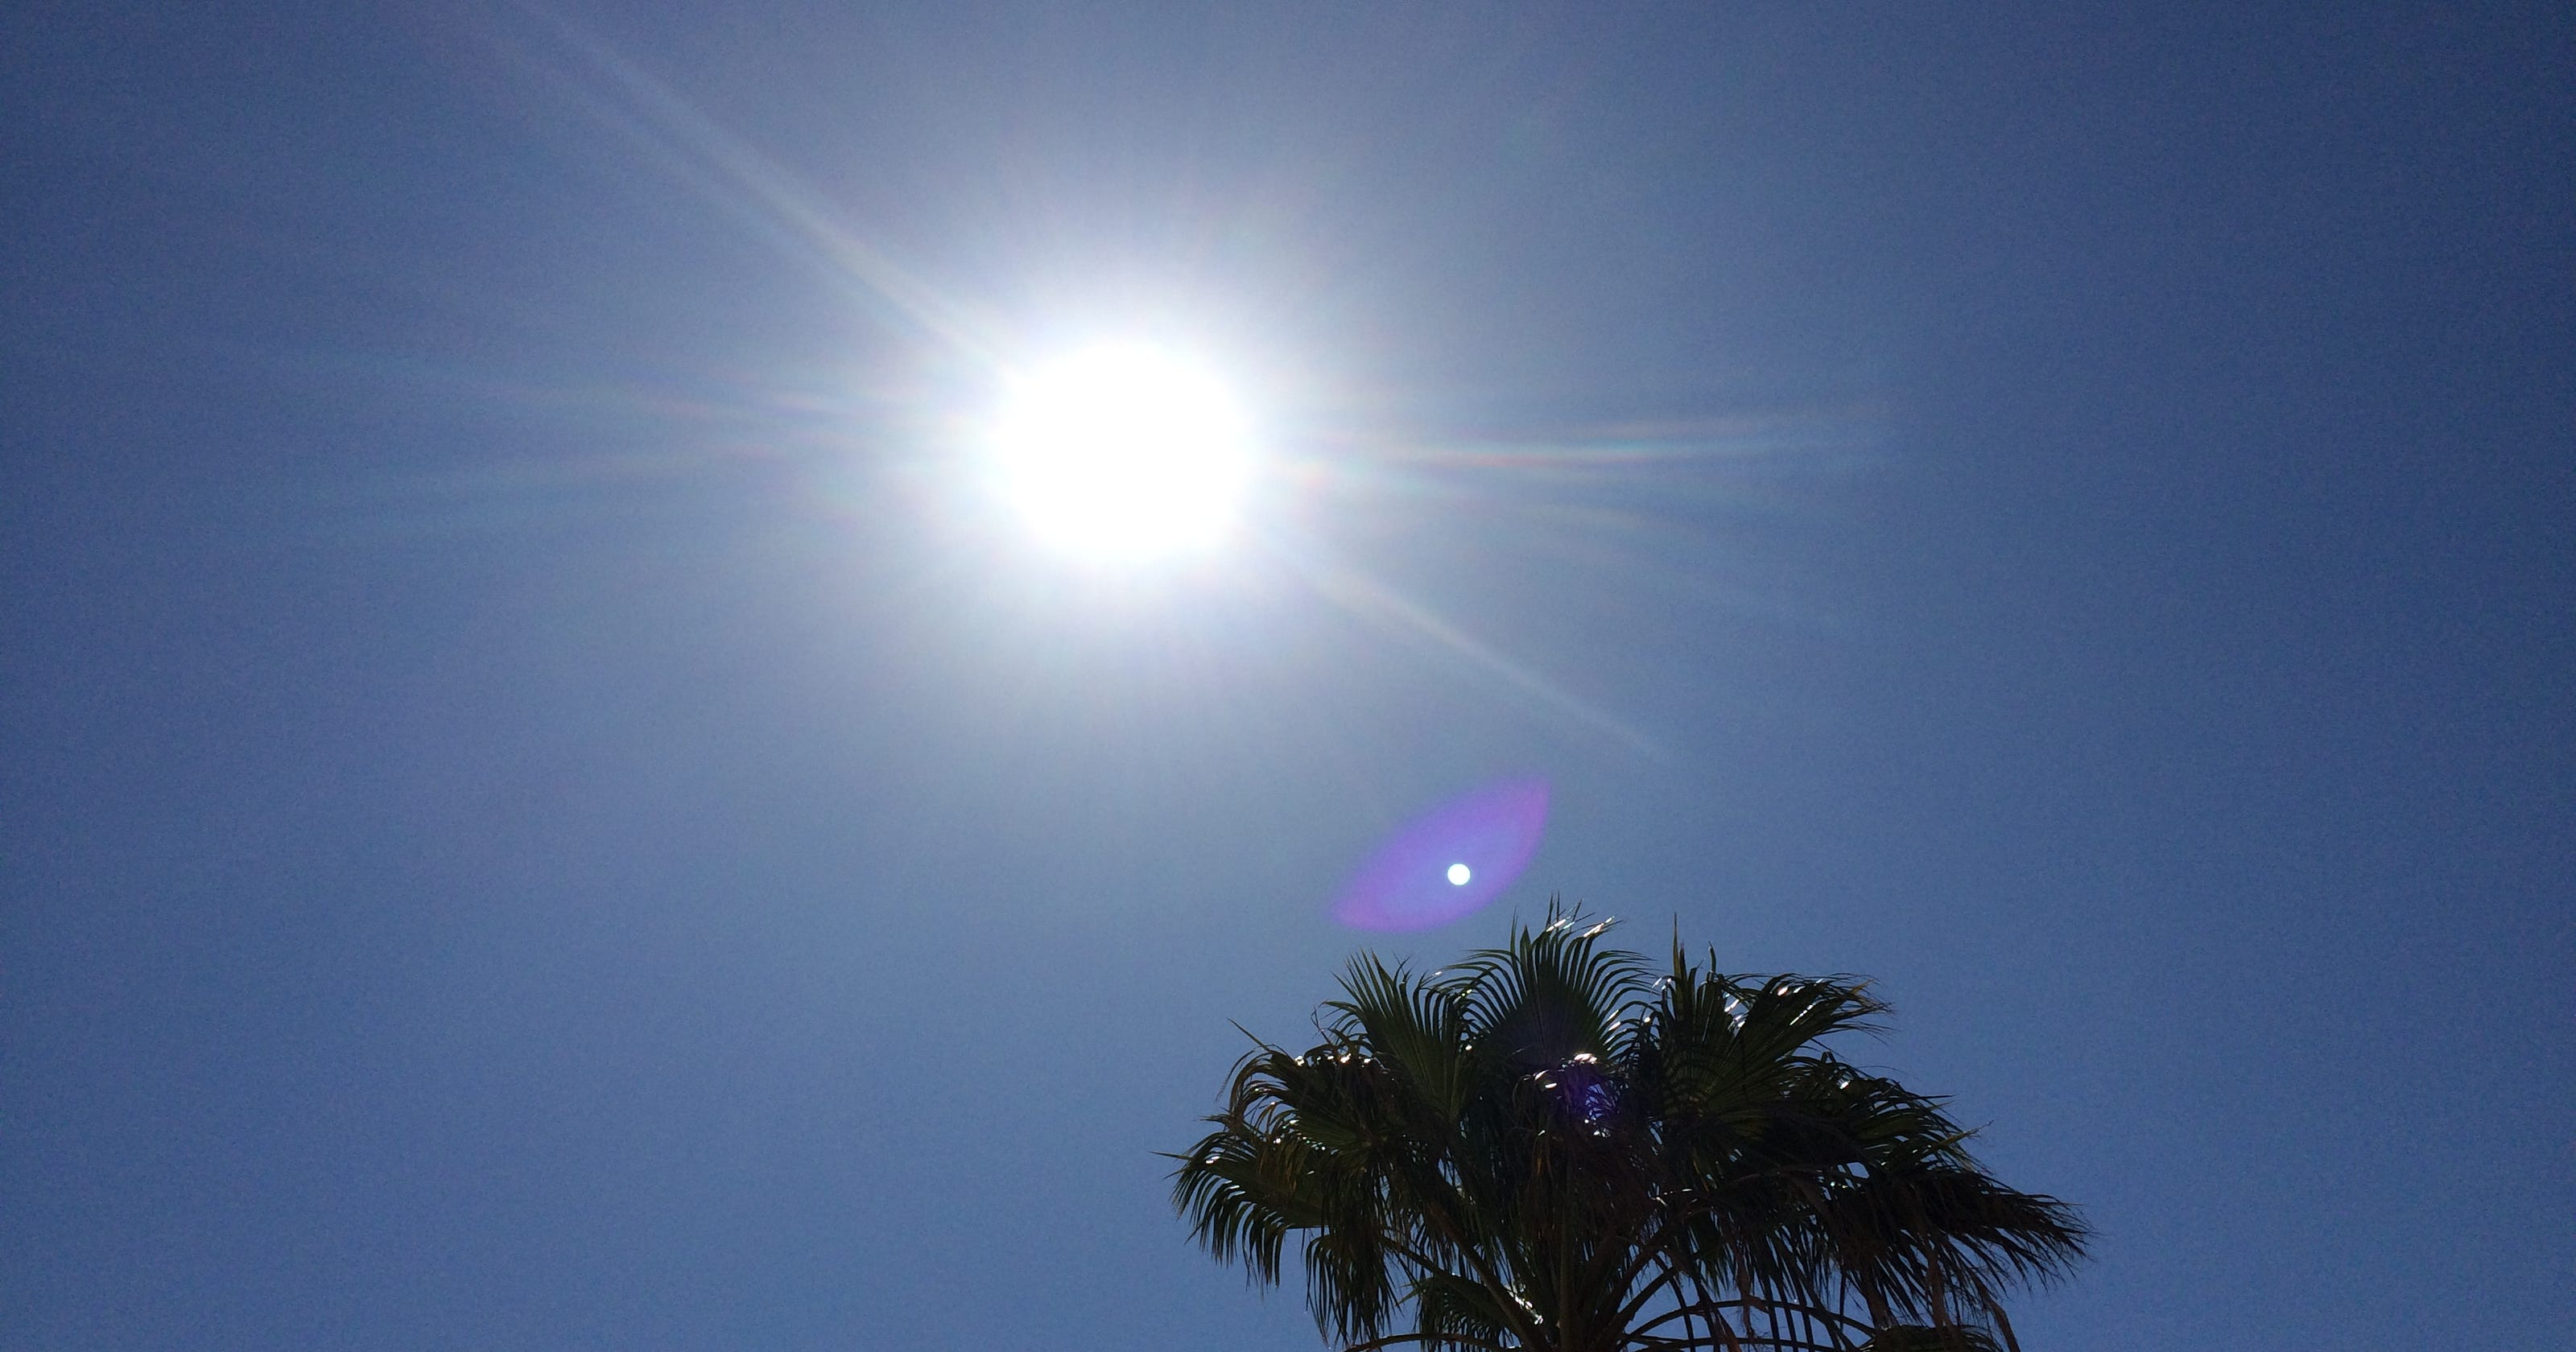 Palm Springs ties record for hottest day ever at 123 degrees